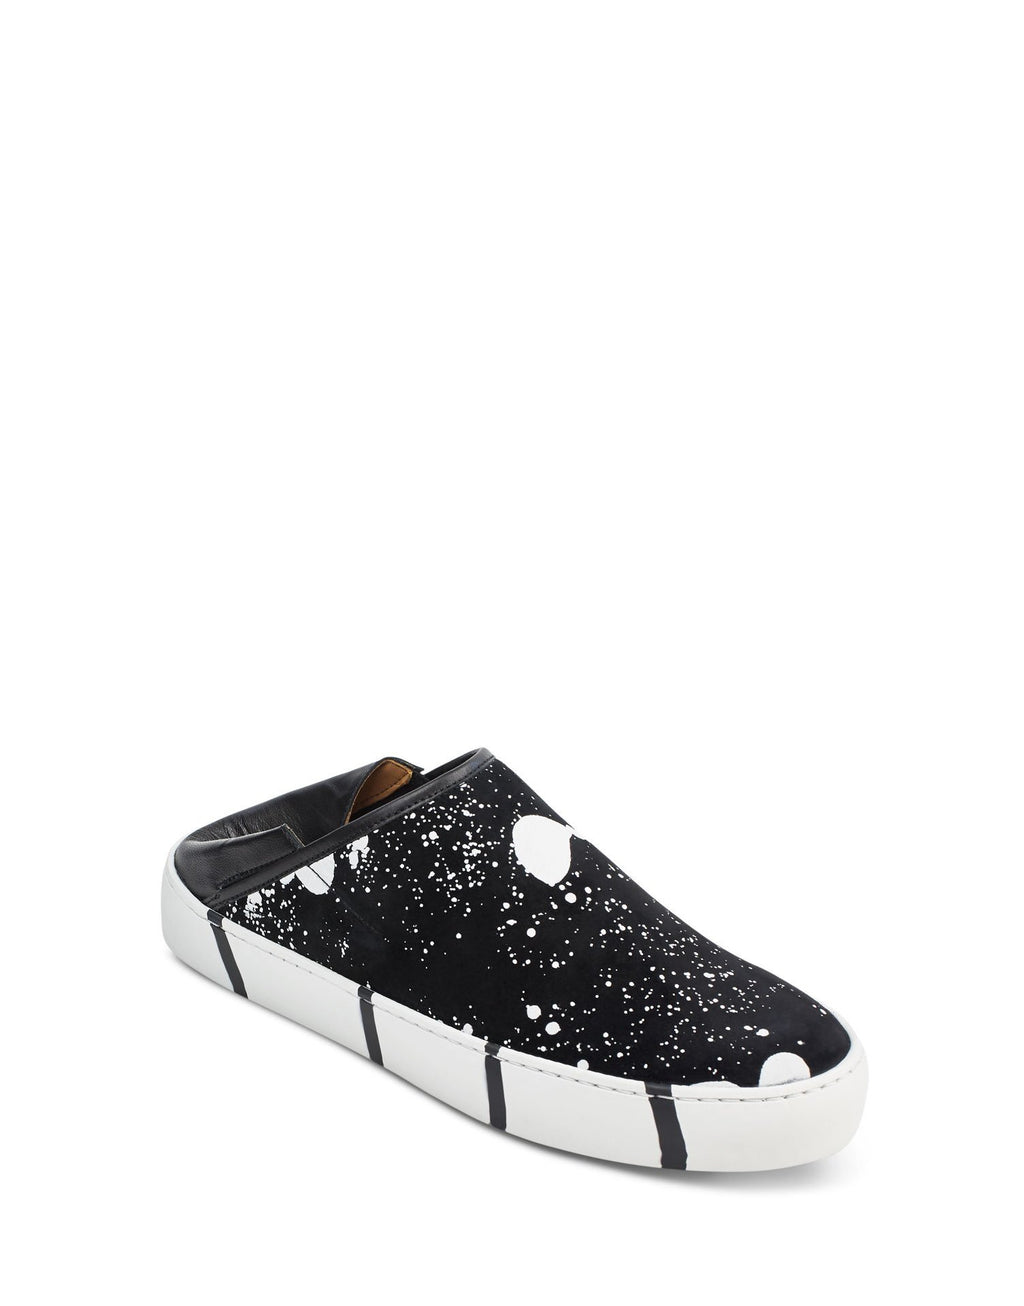 Black and white splash art to wear unique slip on sneaker by designer Georgina Goodman